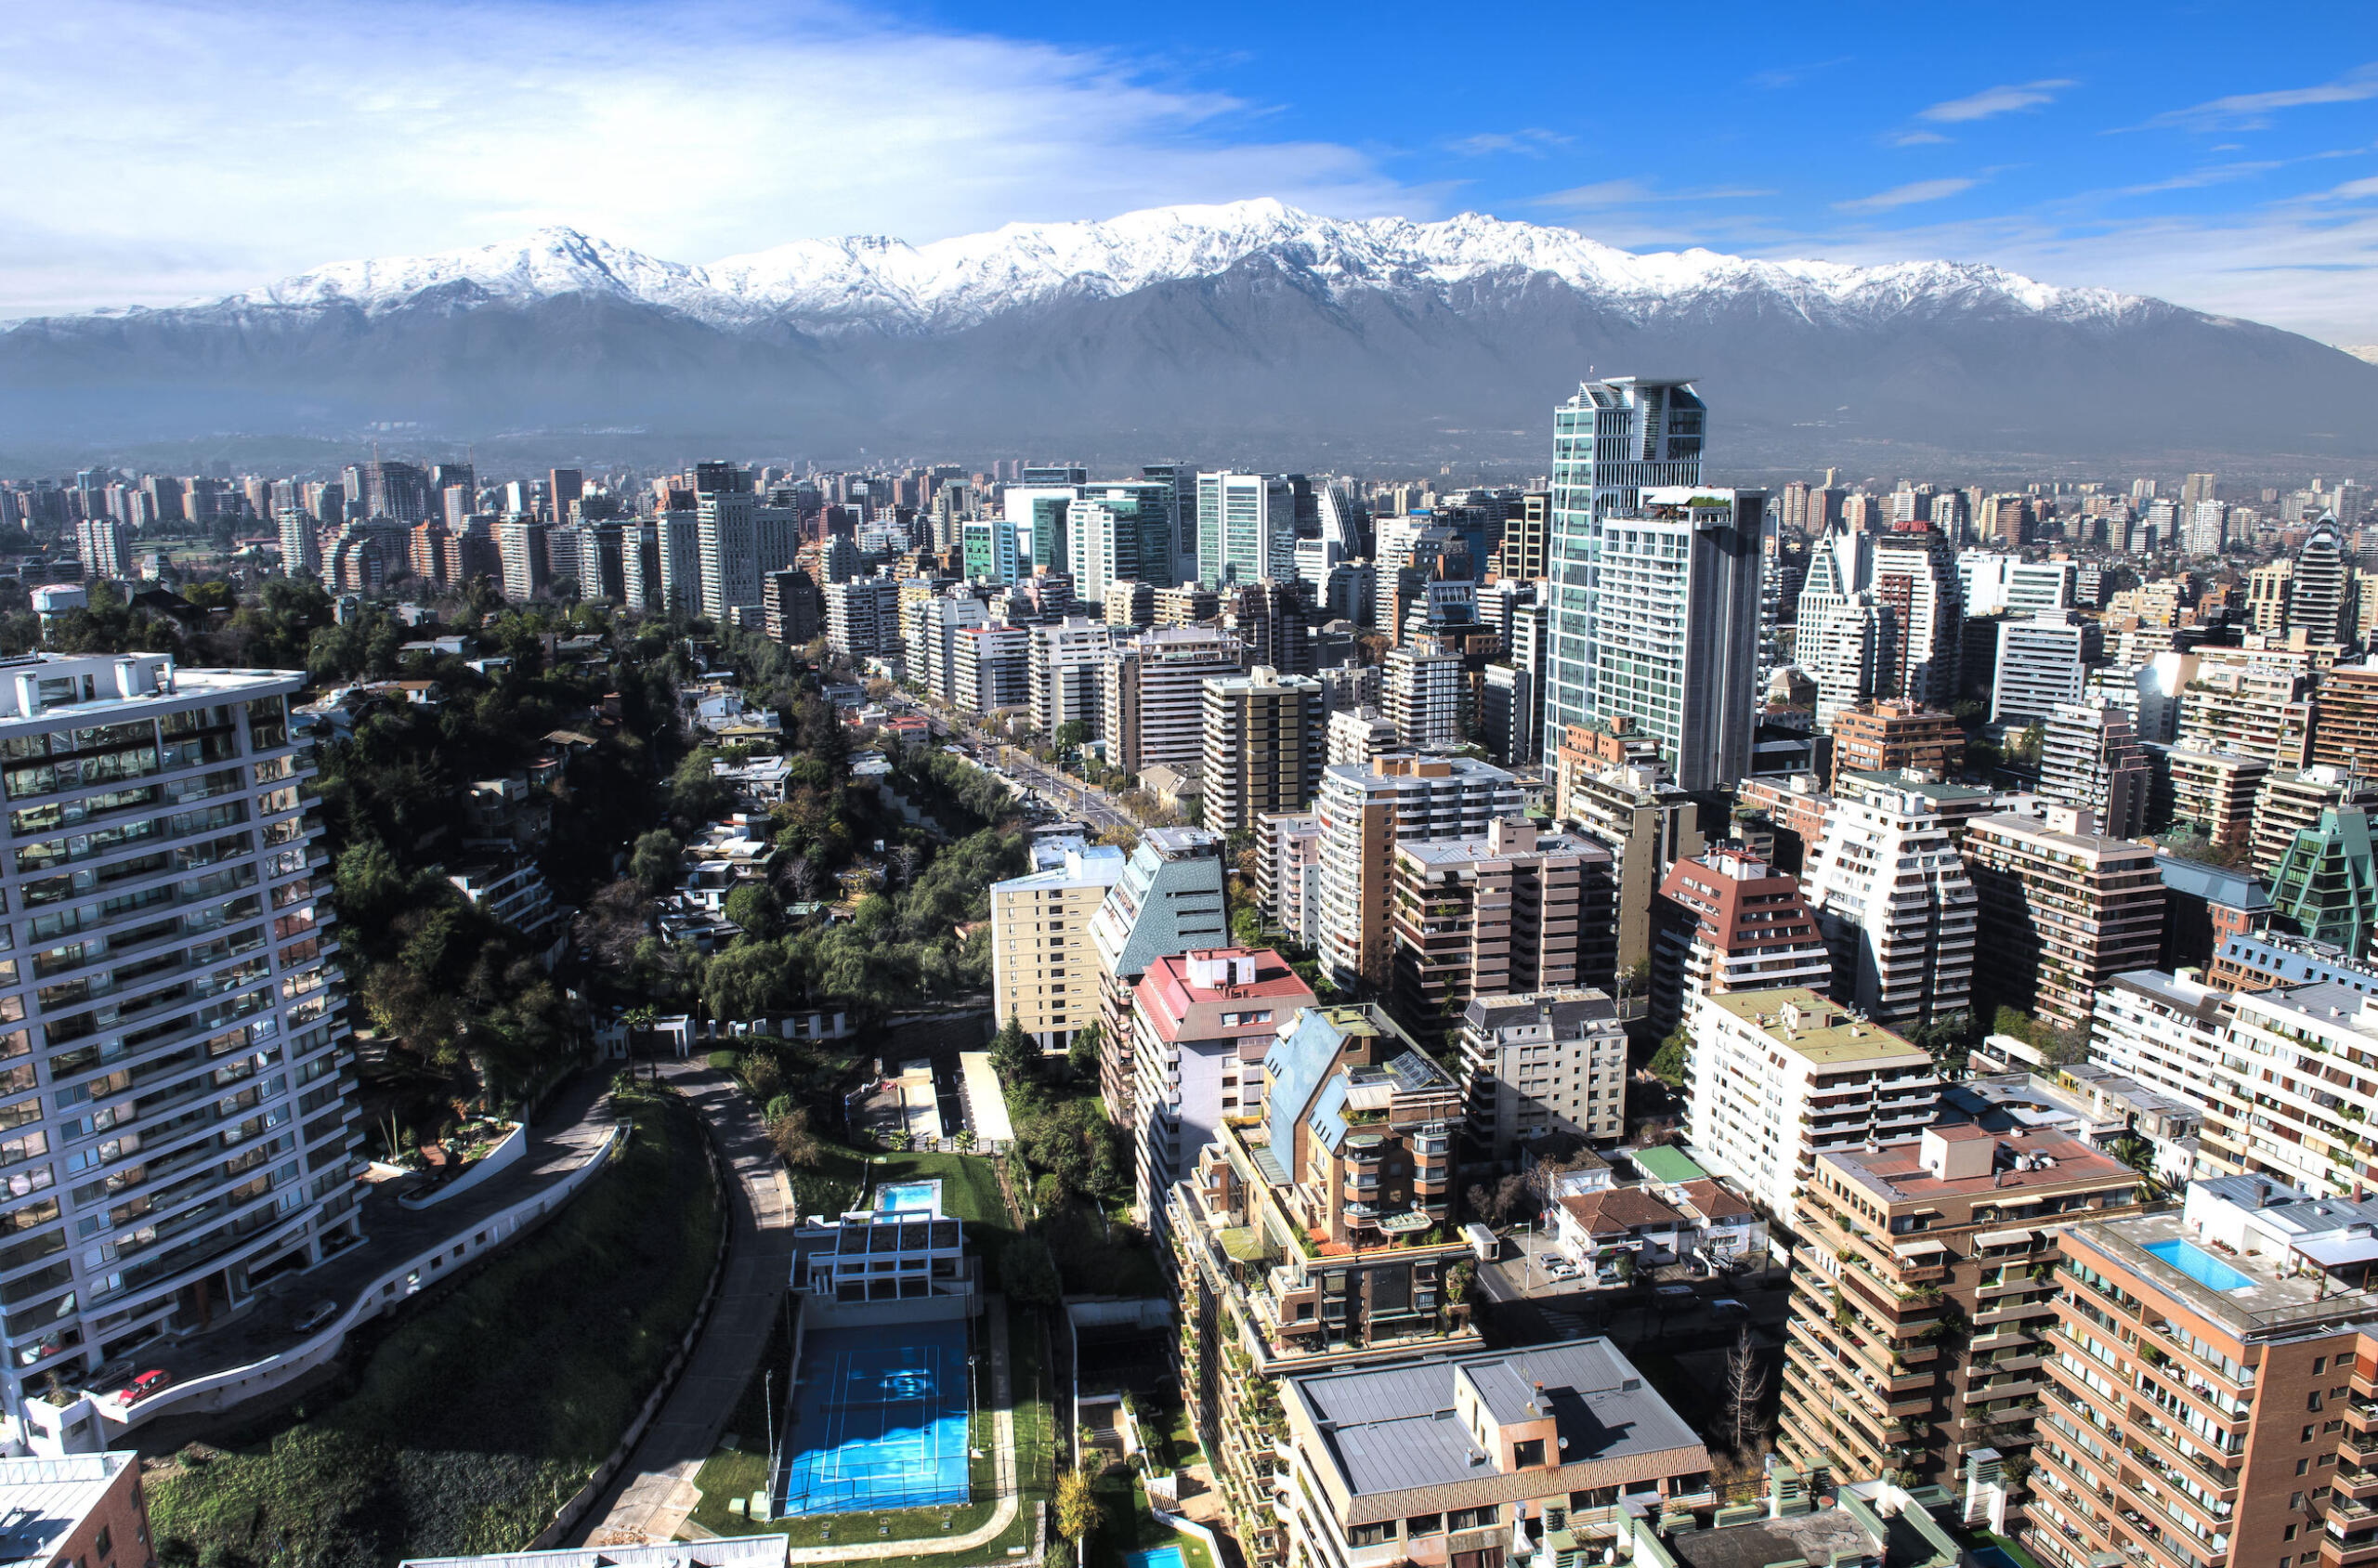 View of the expanse of Santiago, Chile under the Andes Mountains